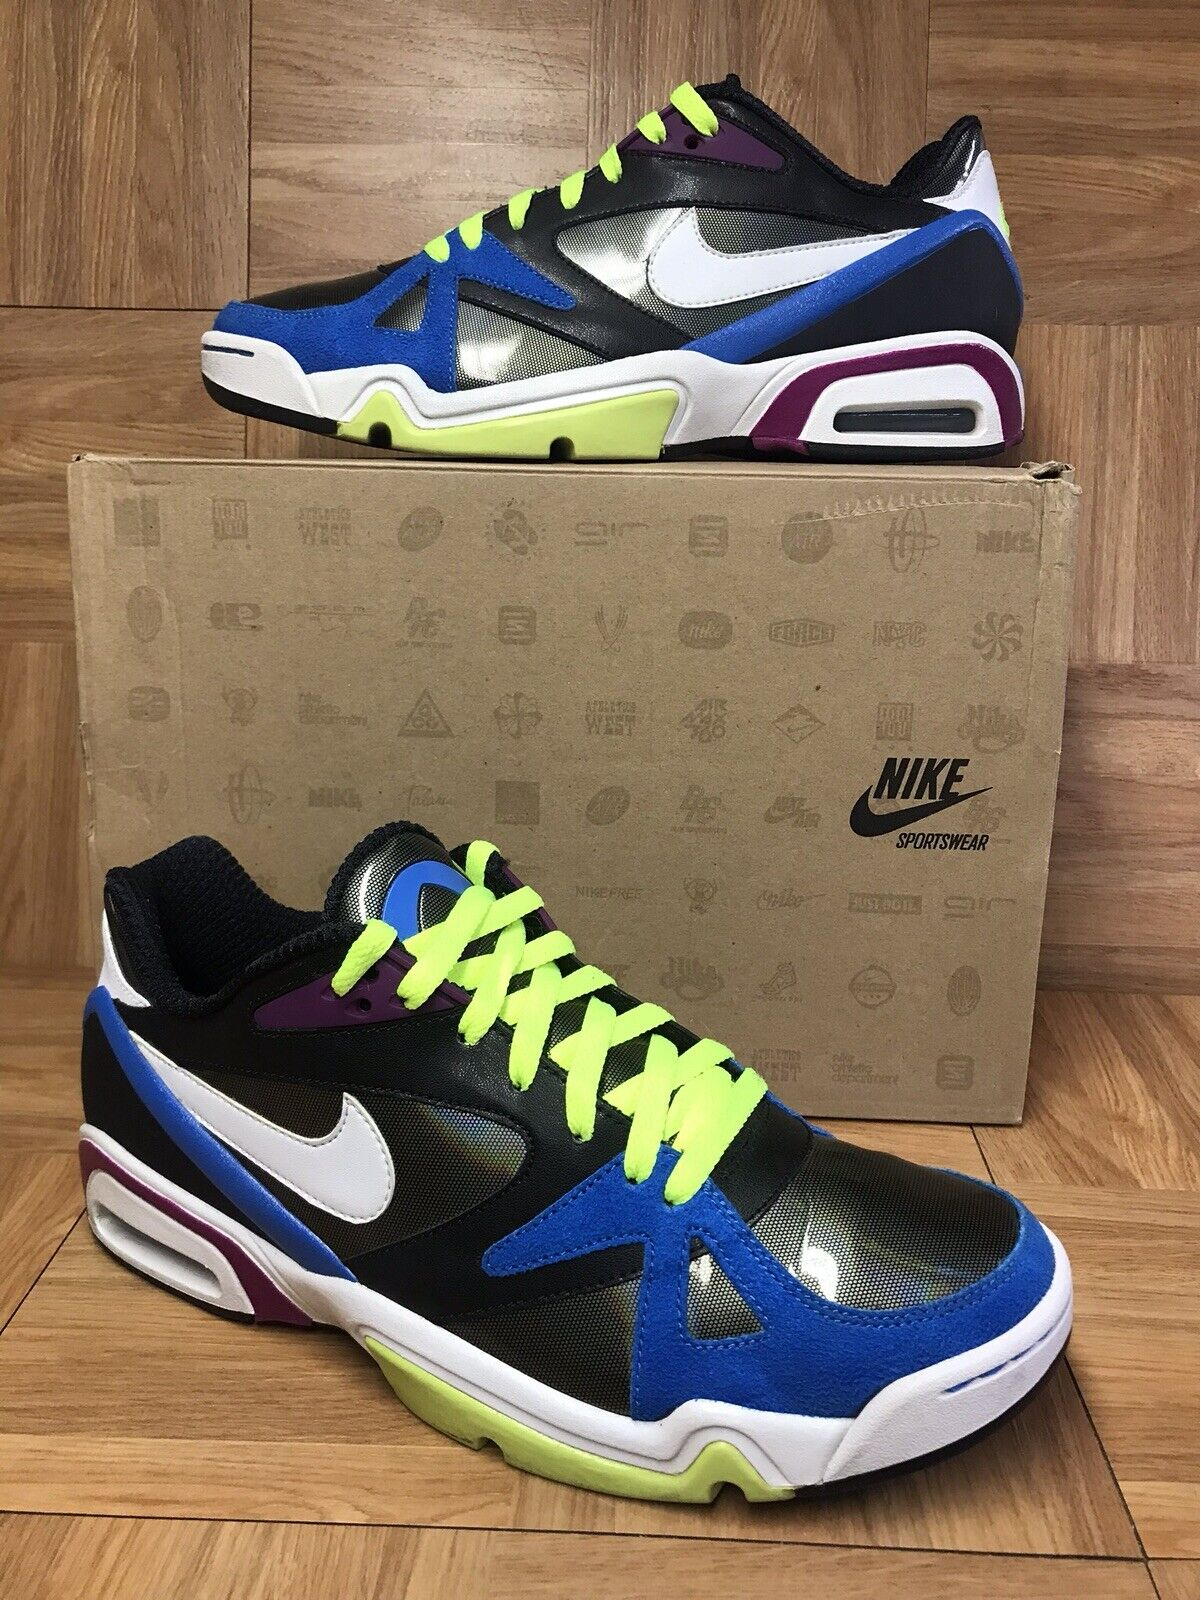 RARE Nike Hoop Structure Low LE HOH Sz 11 Silver Black Photo bluee 410704-046